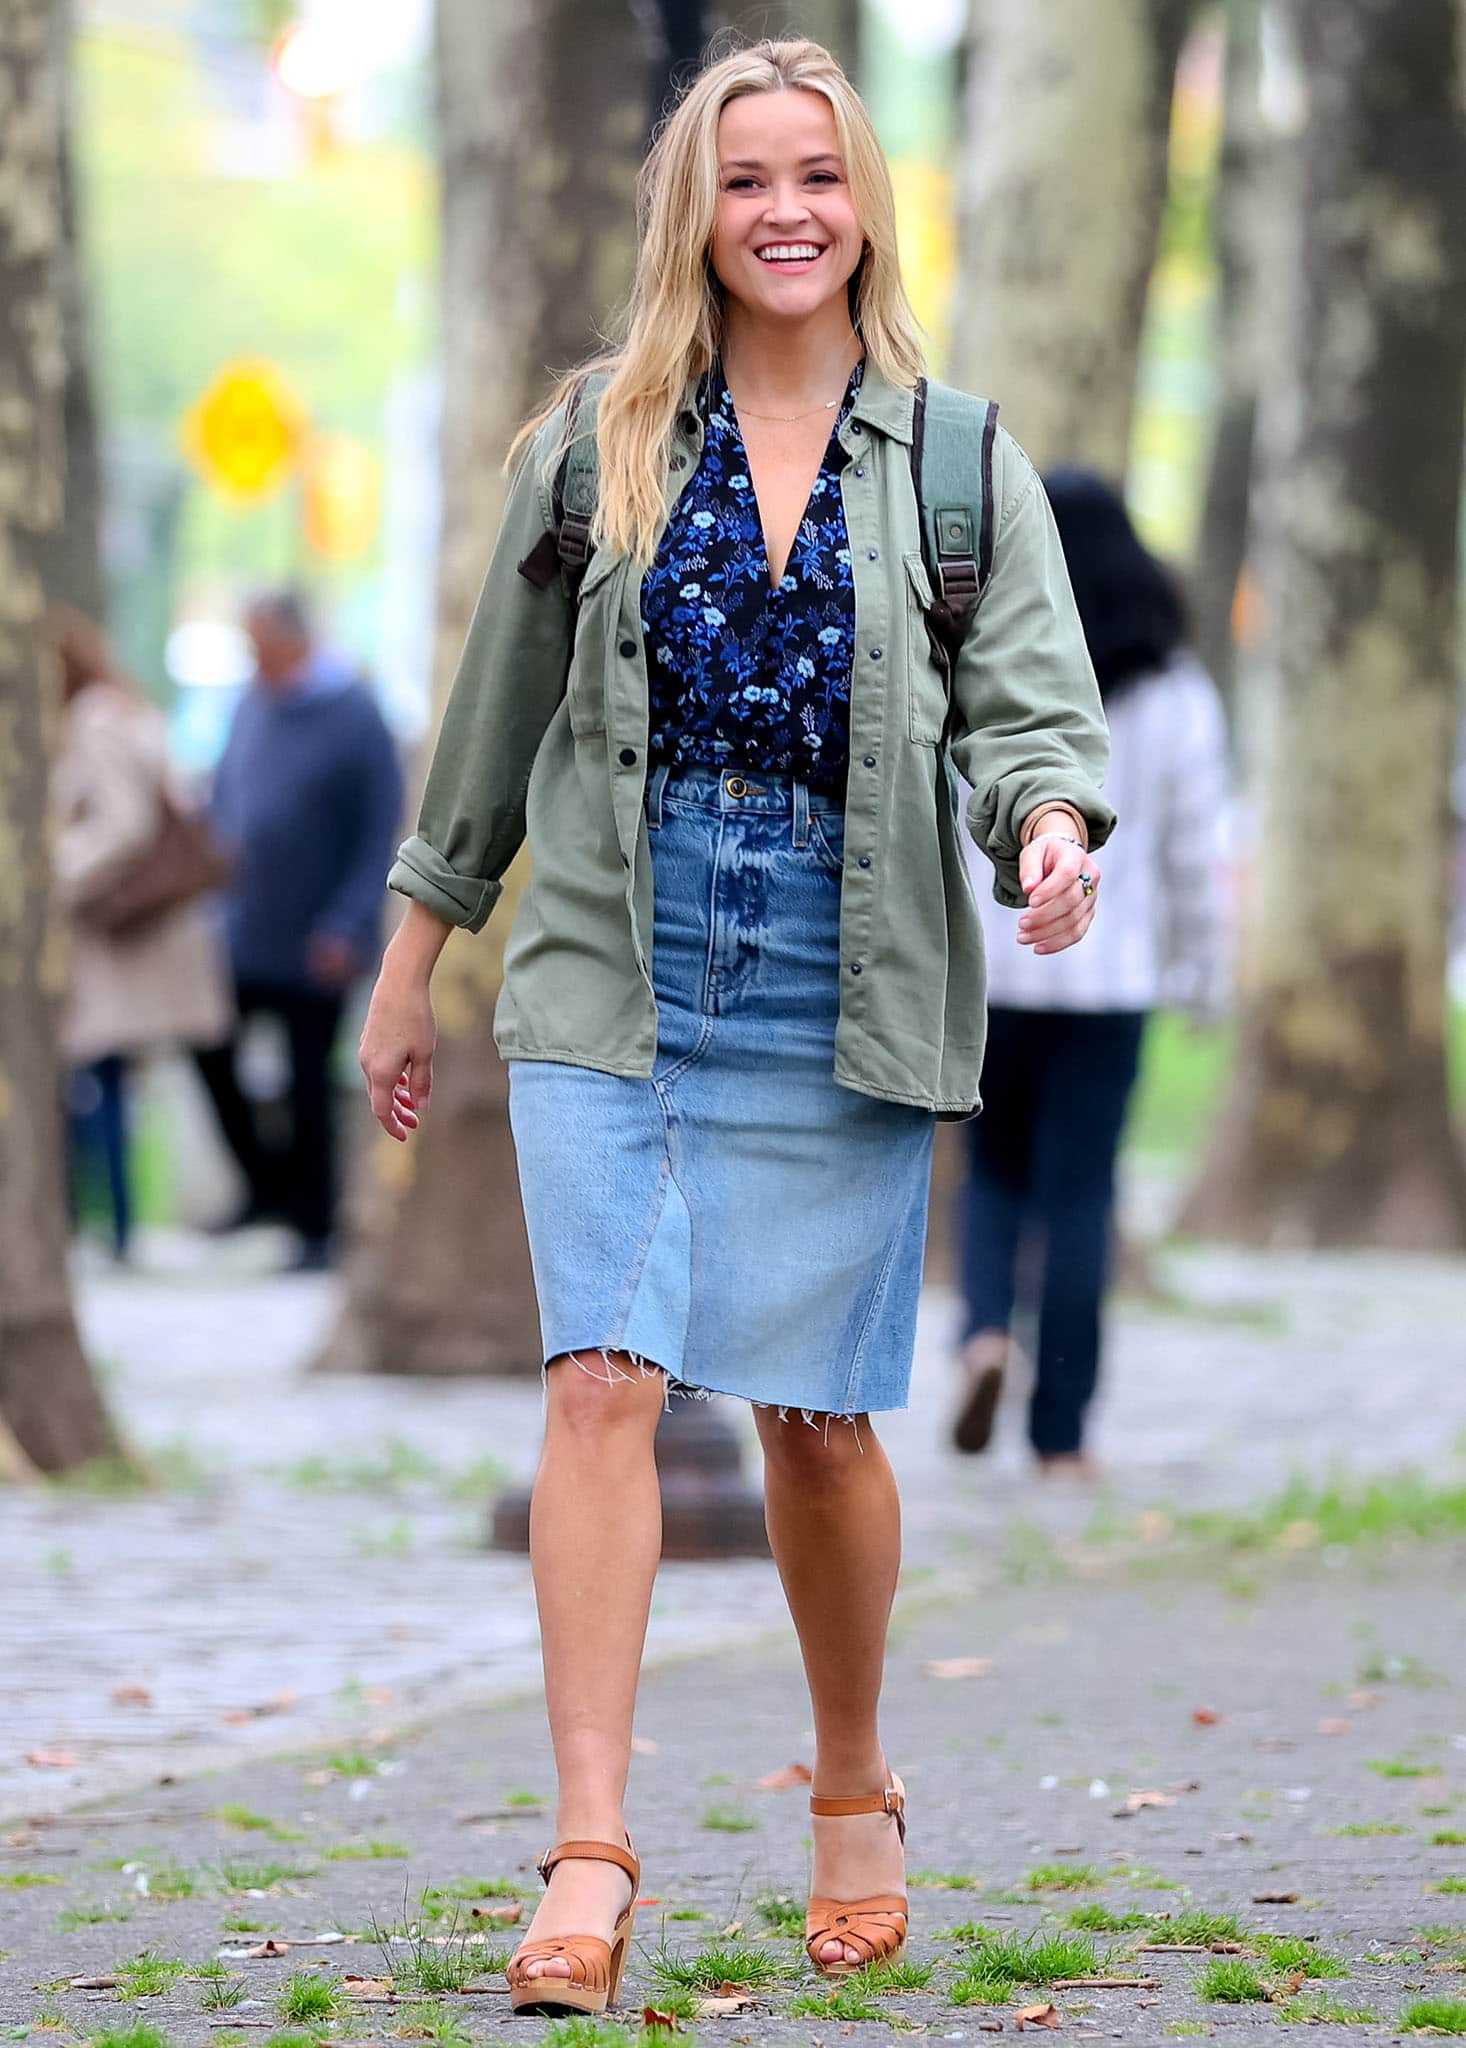 Reese Witherspoon all smiles on the set of her rom-com Your Place or Mine on October 4, 2021